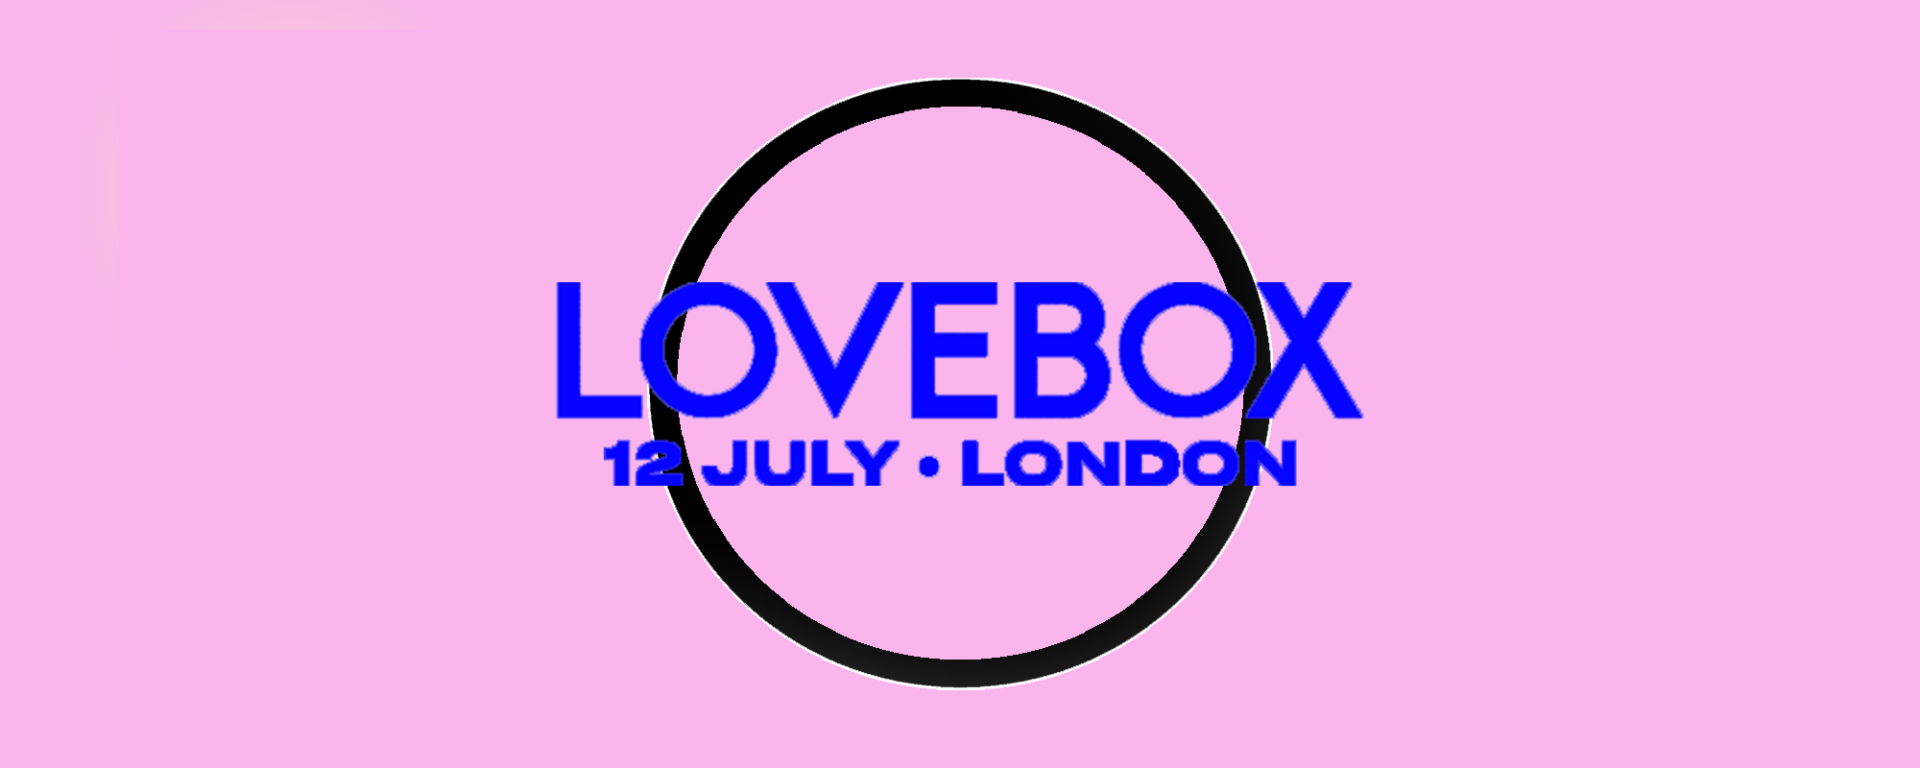 LoveBox London Music Festival Friday 12 July 2019